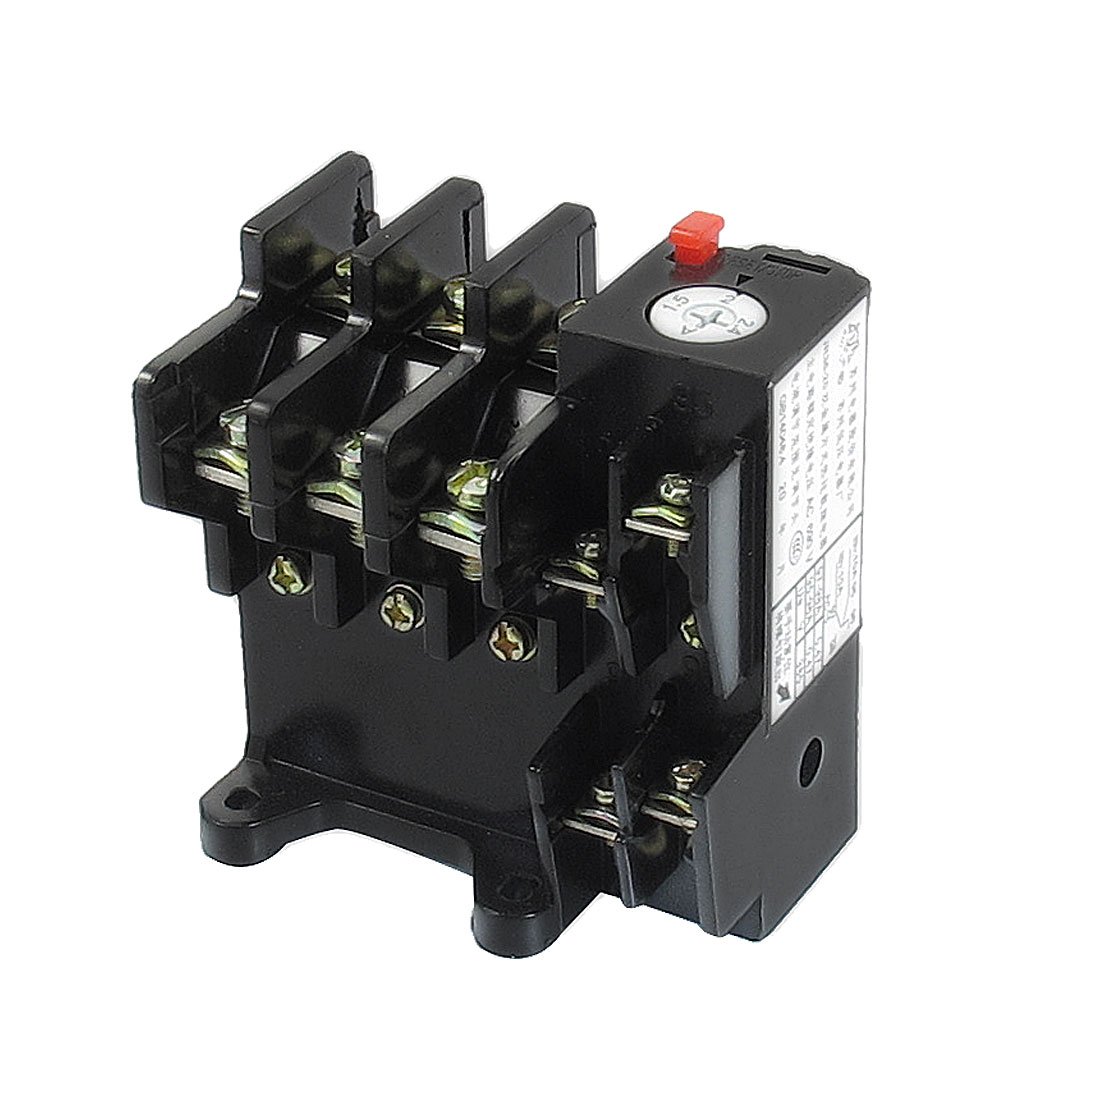 JR36-20 2.4Amp 1.5A-2.4A Adjustable 3 Pole Thermal Overload Relay 1NO 1NC